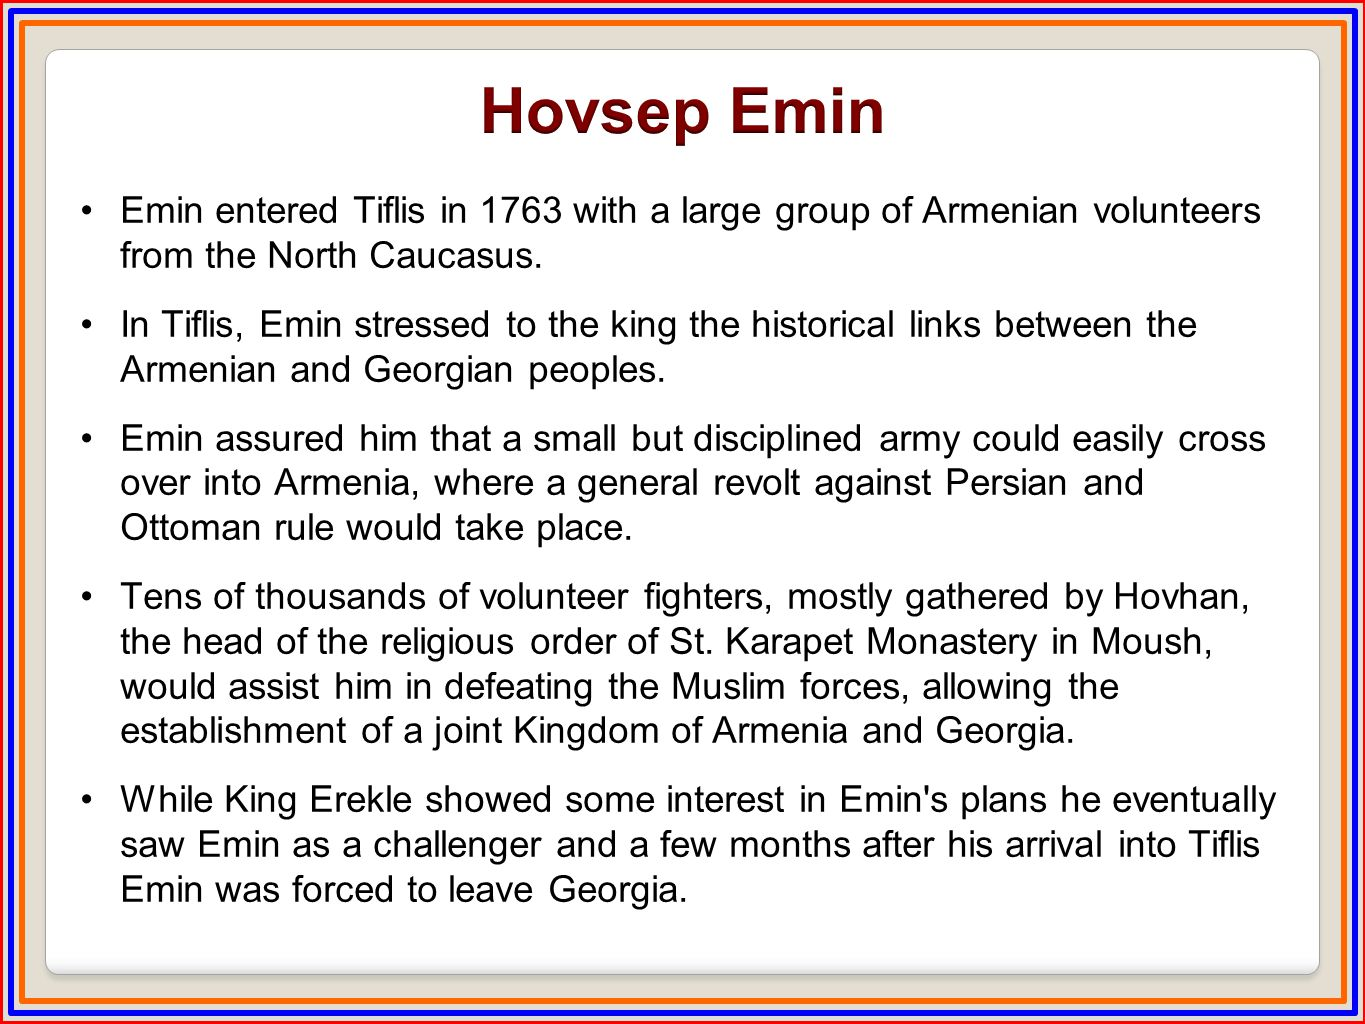 Emin entered Tiflis in 1763 with a large group of Armenian volunteers from the North Caucasus.